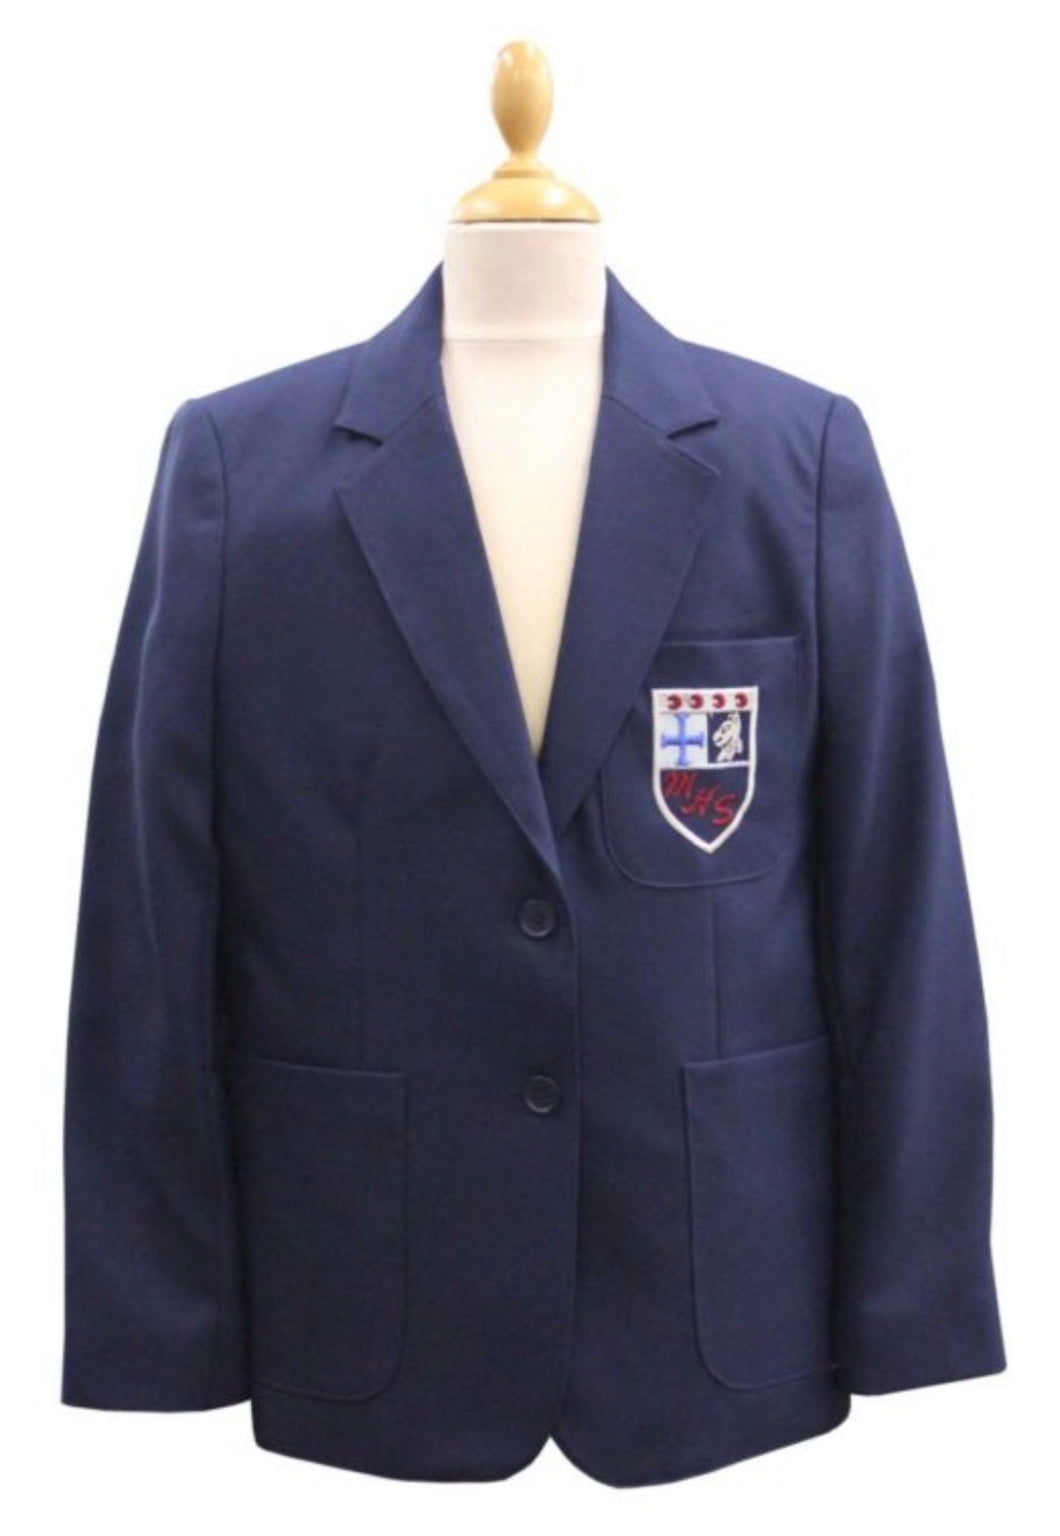 Maghull High Girls Blazer